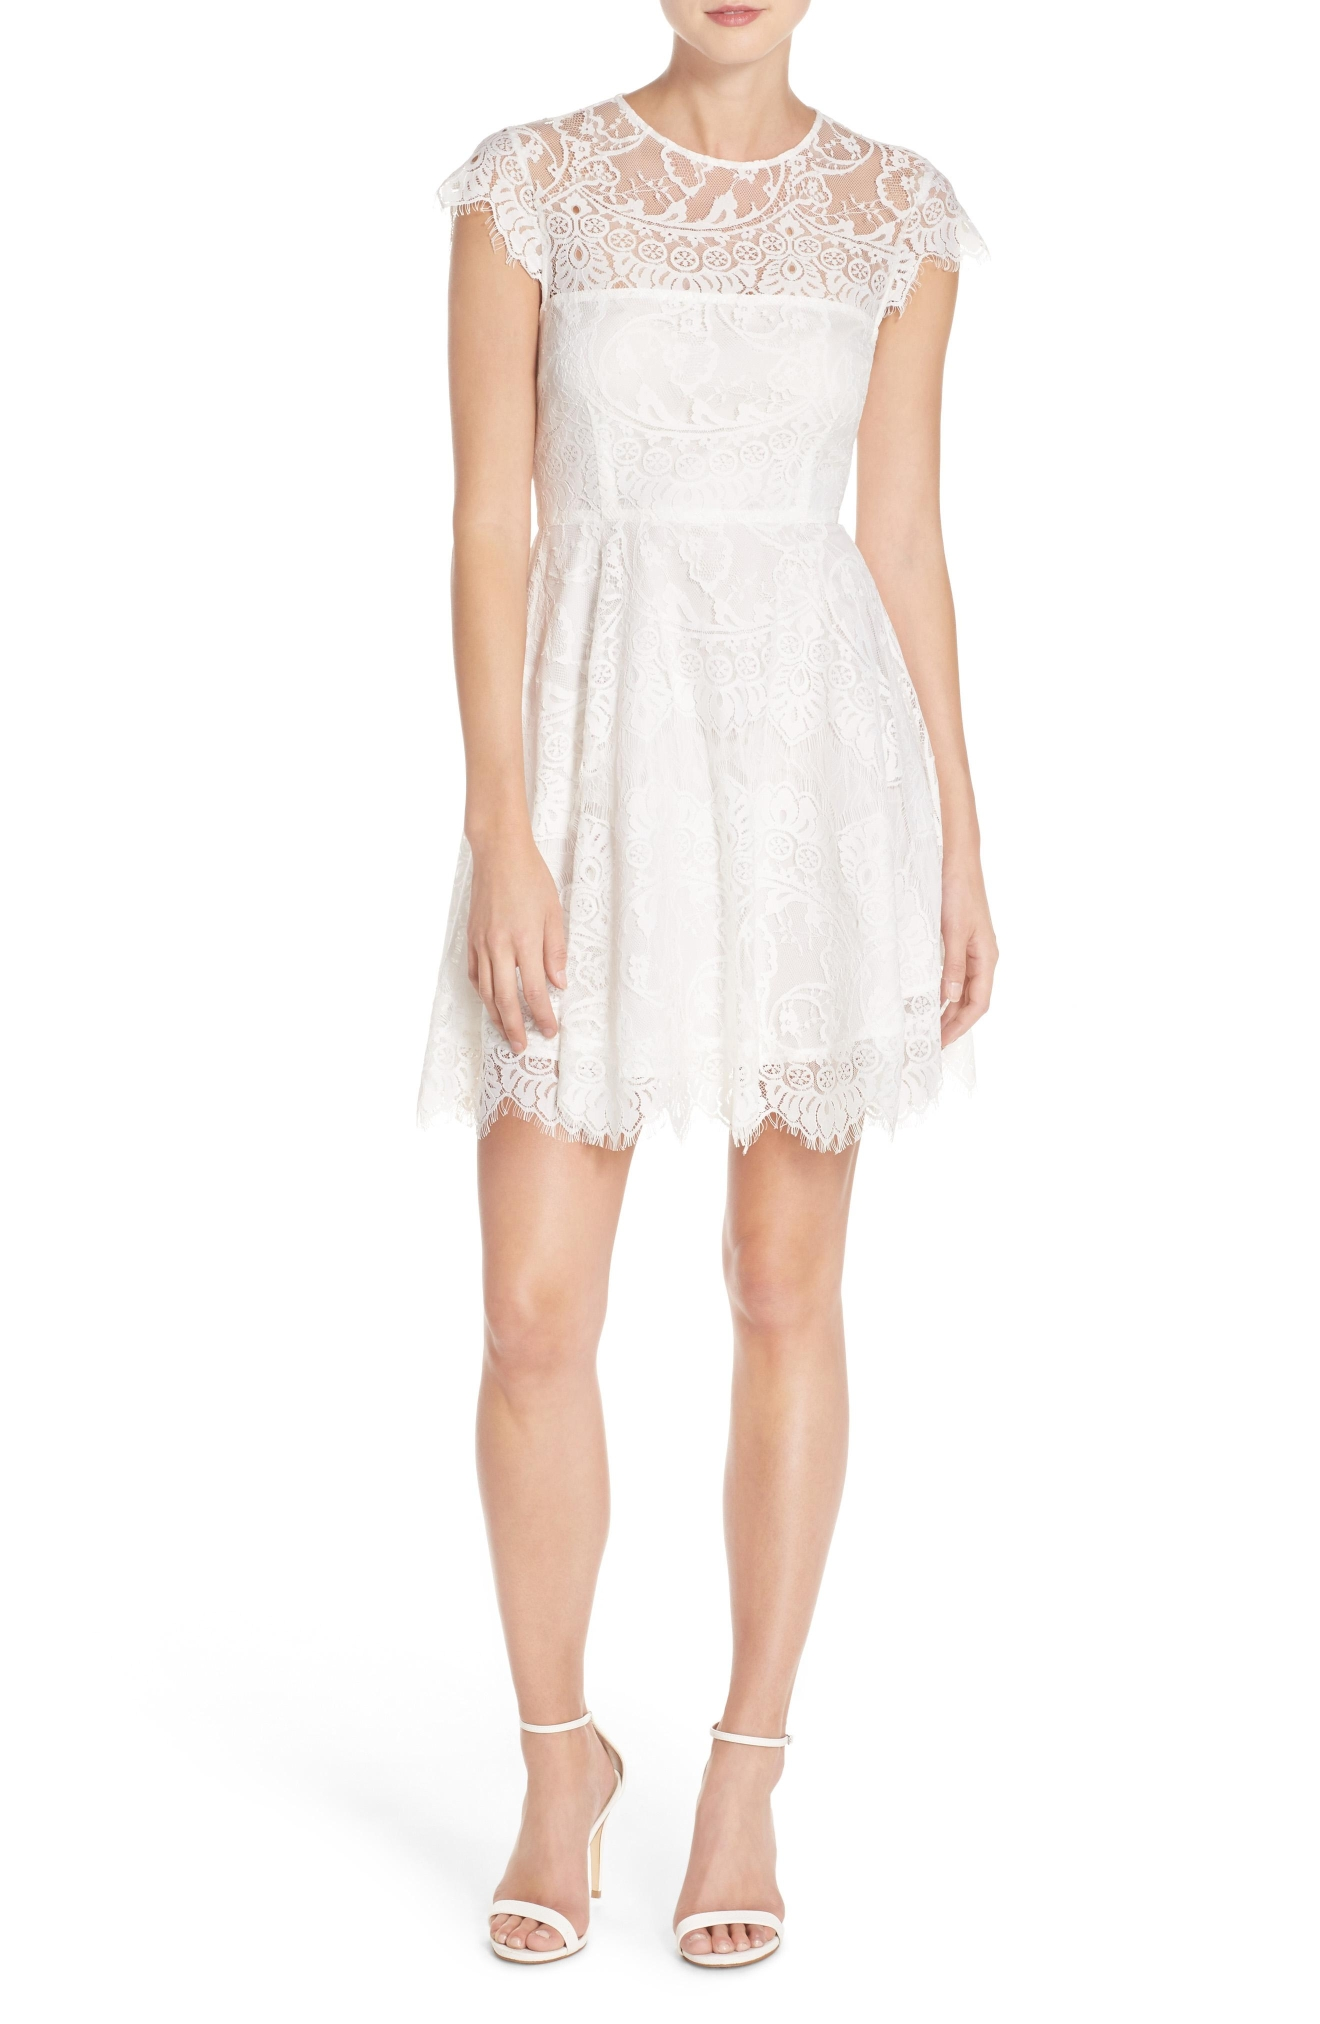 BB Dakota 'Rhianna' Illusion Yoke Lace Fit & Flare Dress, $98, Nordstrom.com (Image: Courtesy Nordstrom)